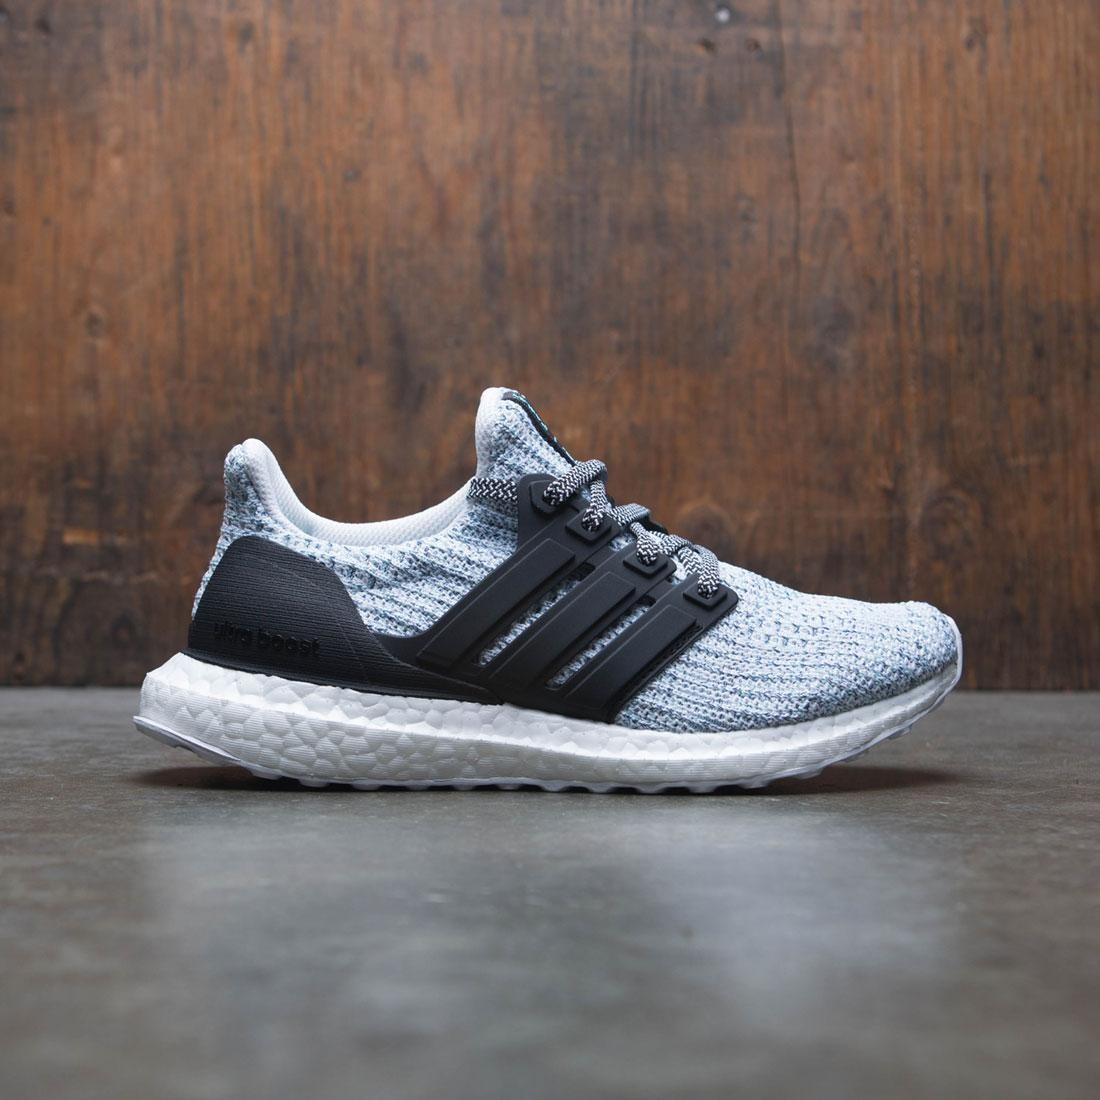 new product 85f95 4a5db Adidas Women UltraBOOST W Parley blue blue spirit carbon footwear white